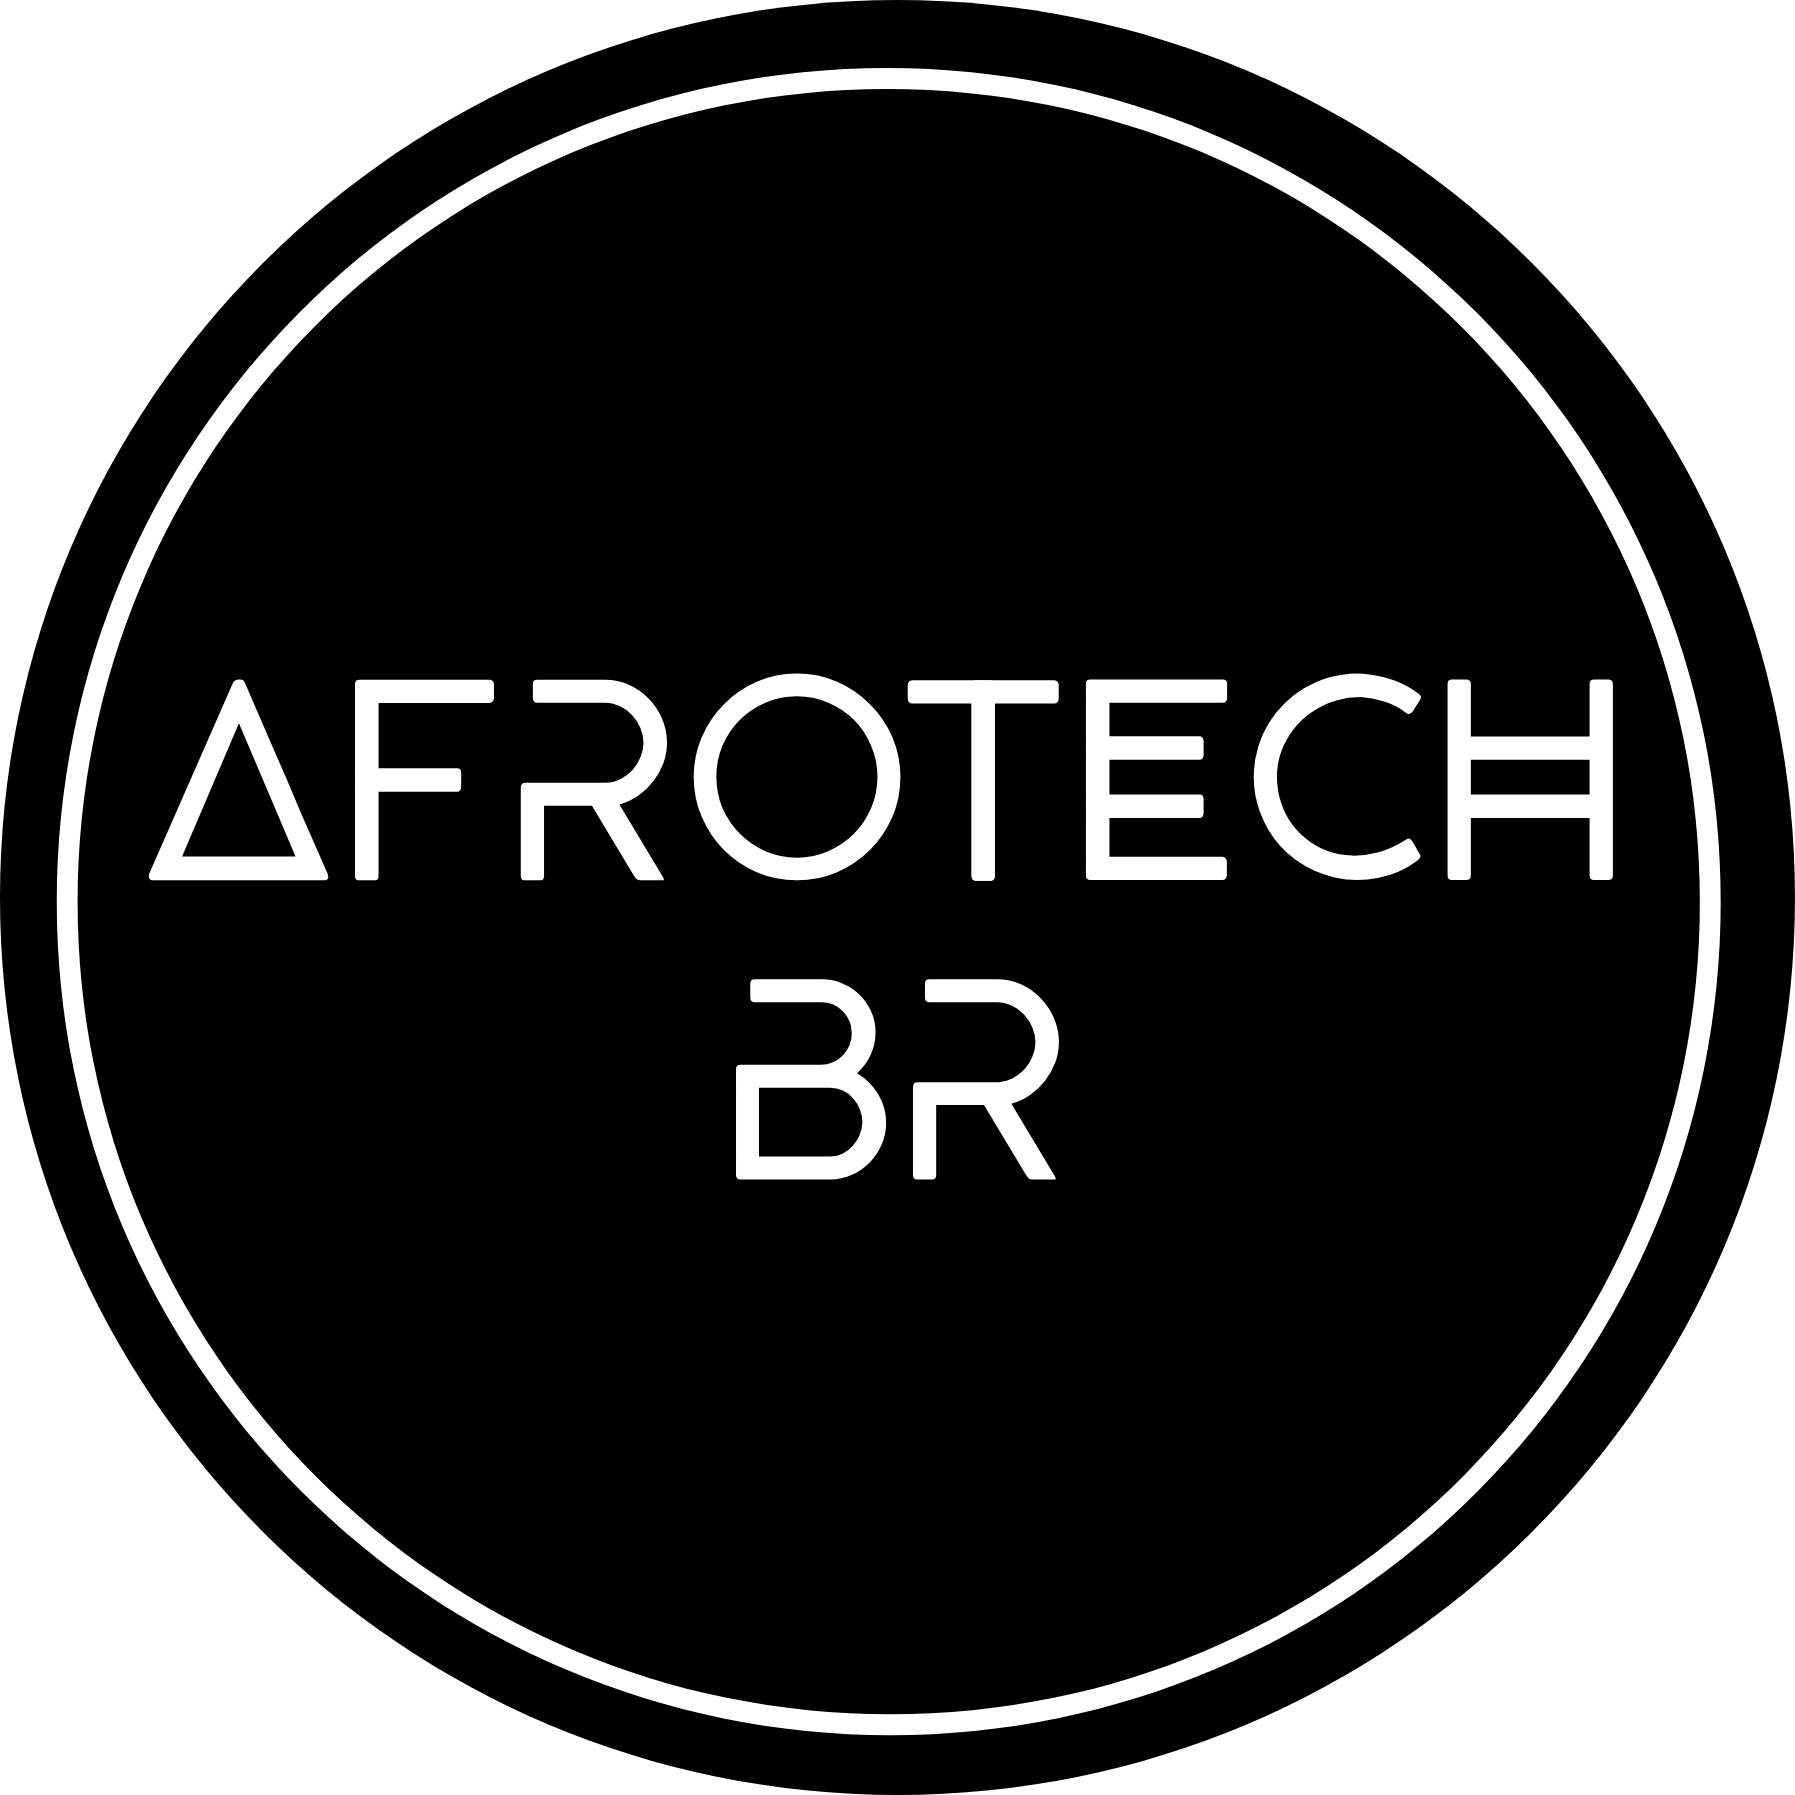 afrotechbr.png